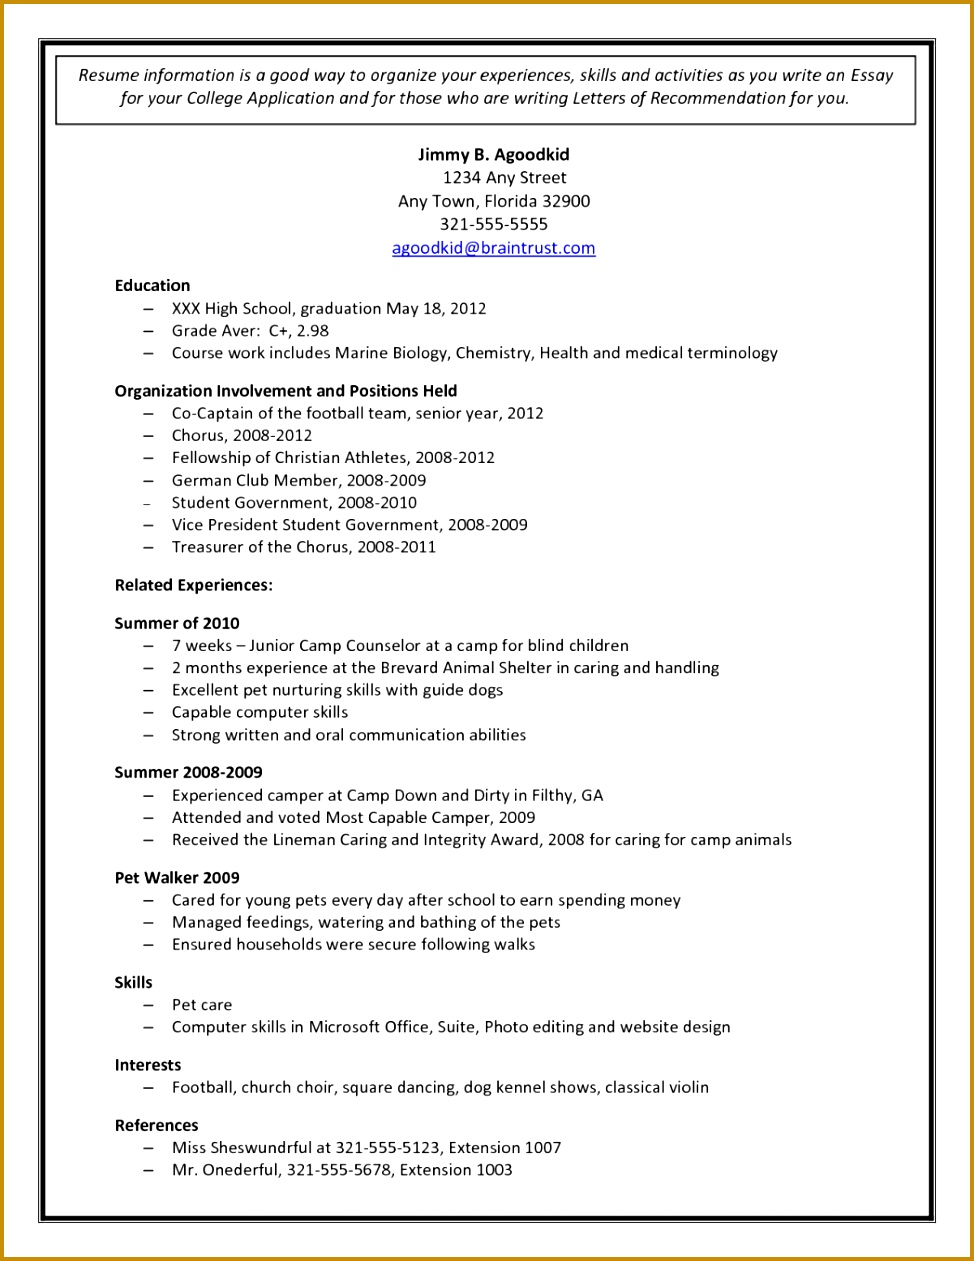 College Admission Resume Template Document Sample Education High School For Application A830cce8ac ab0 High School Resume Template 1261974